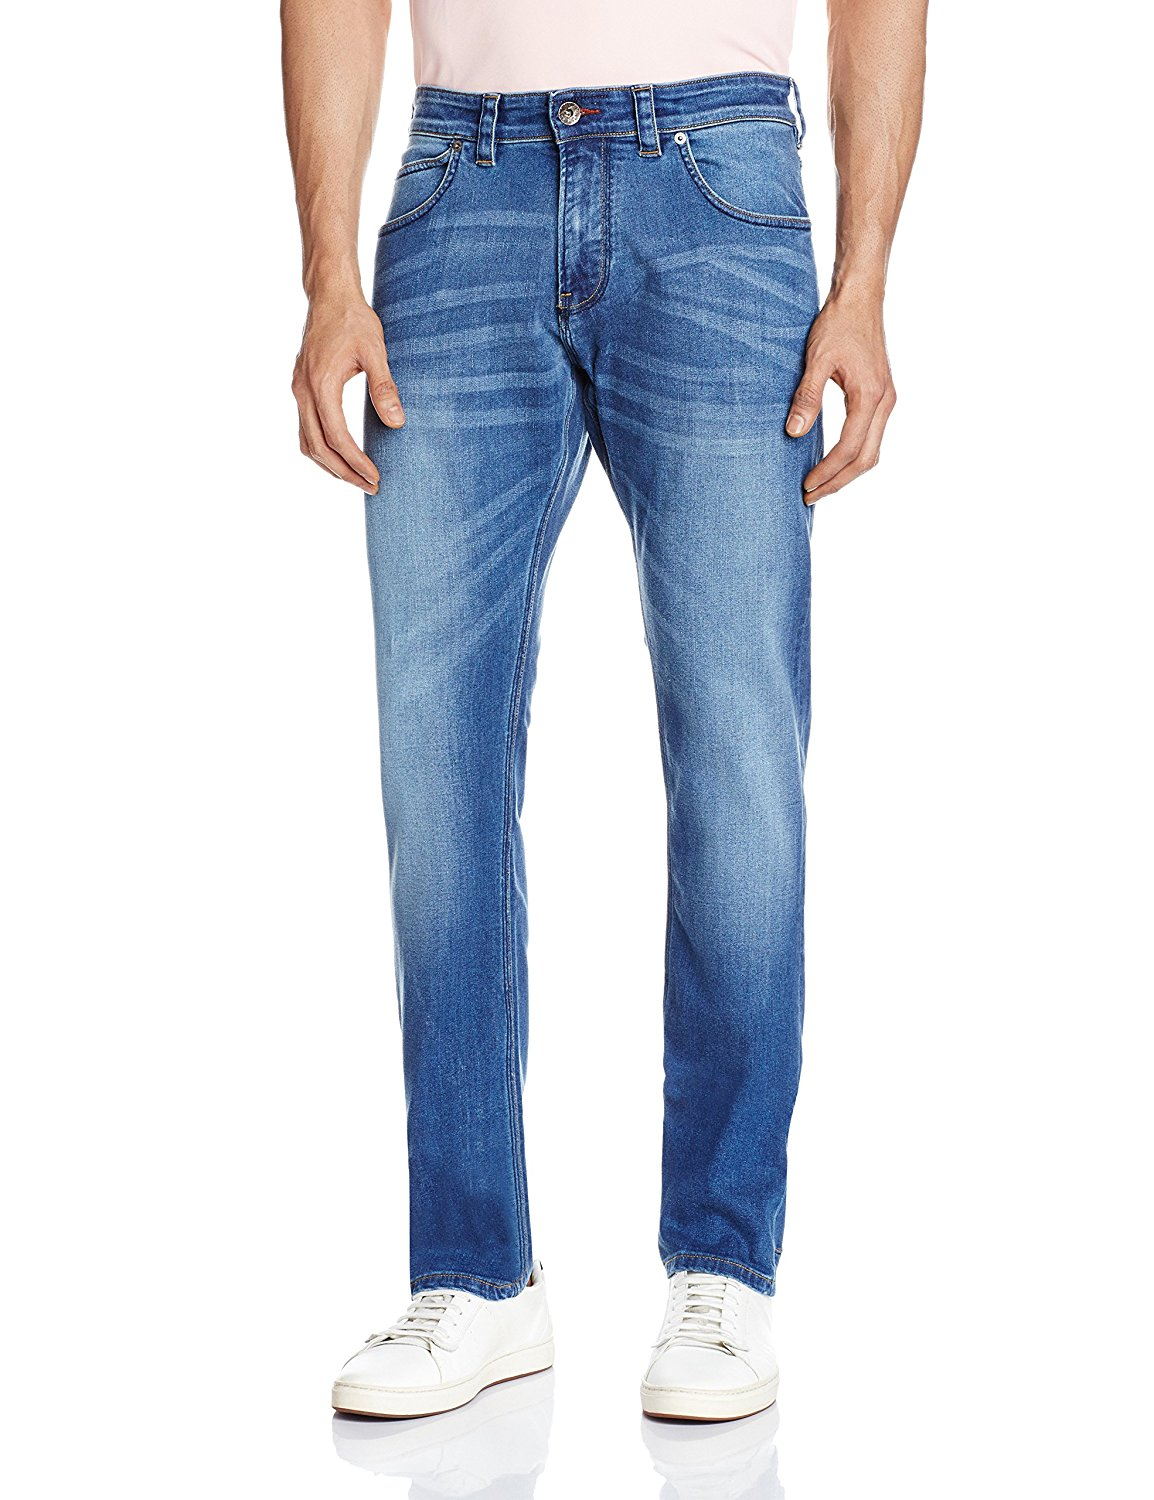 French Connection Men's Skinny Fit Jeans low price